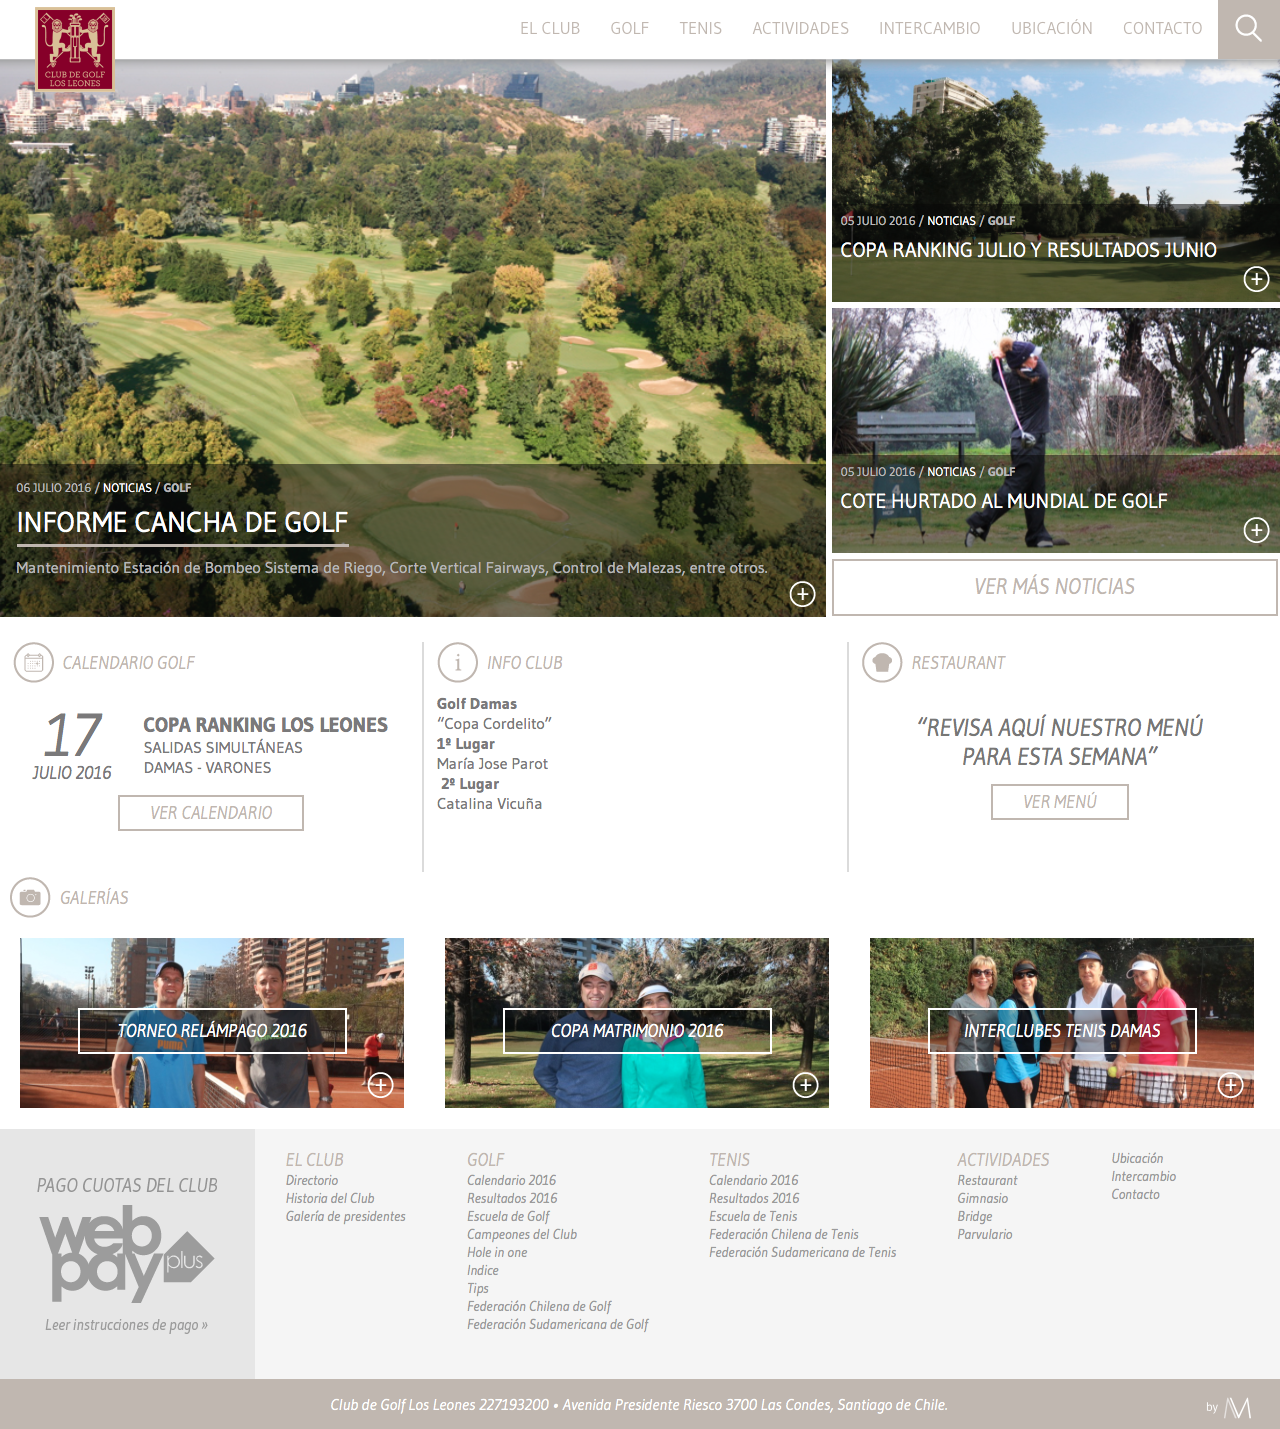 club de golf los leones sitio web